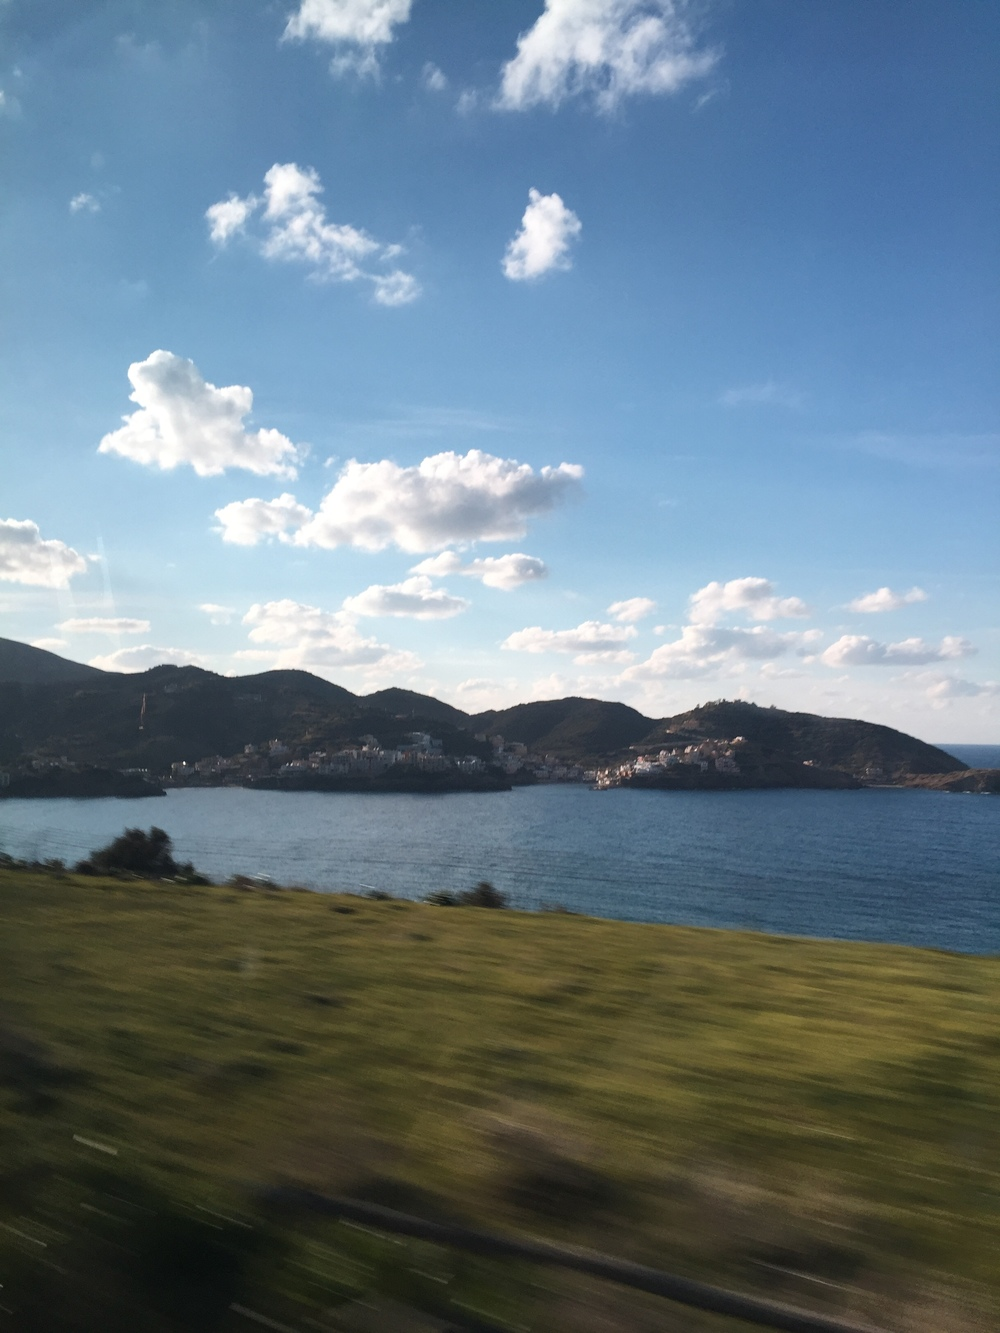 Driving through the island of Crete